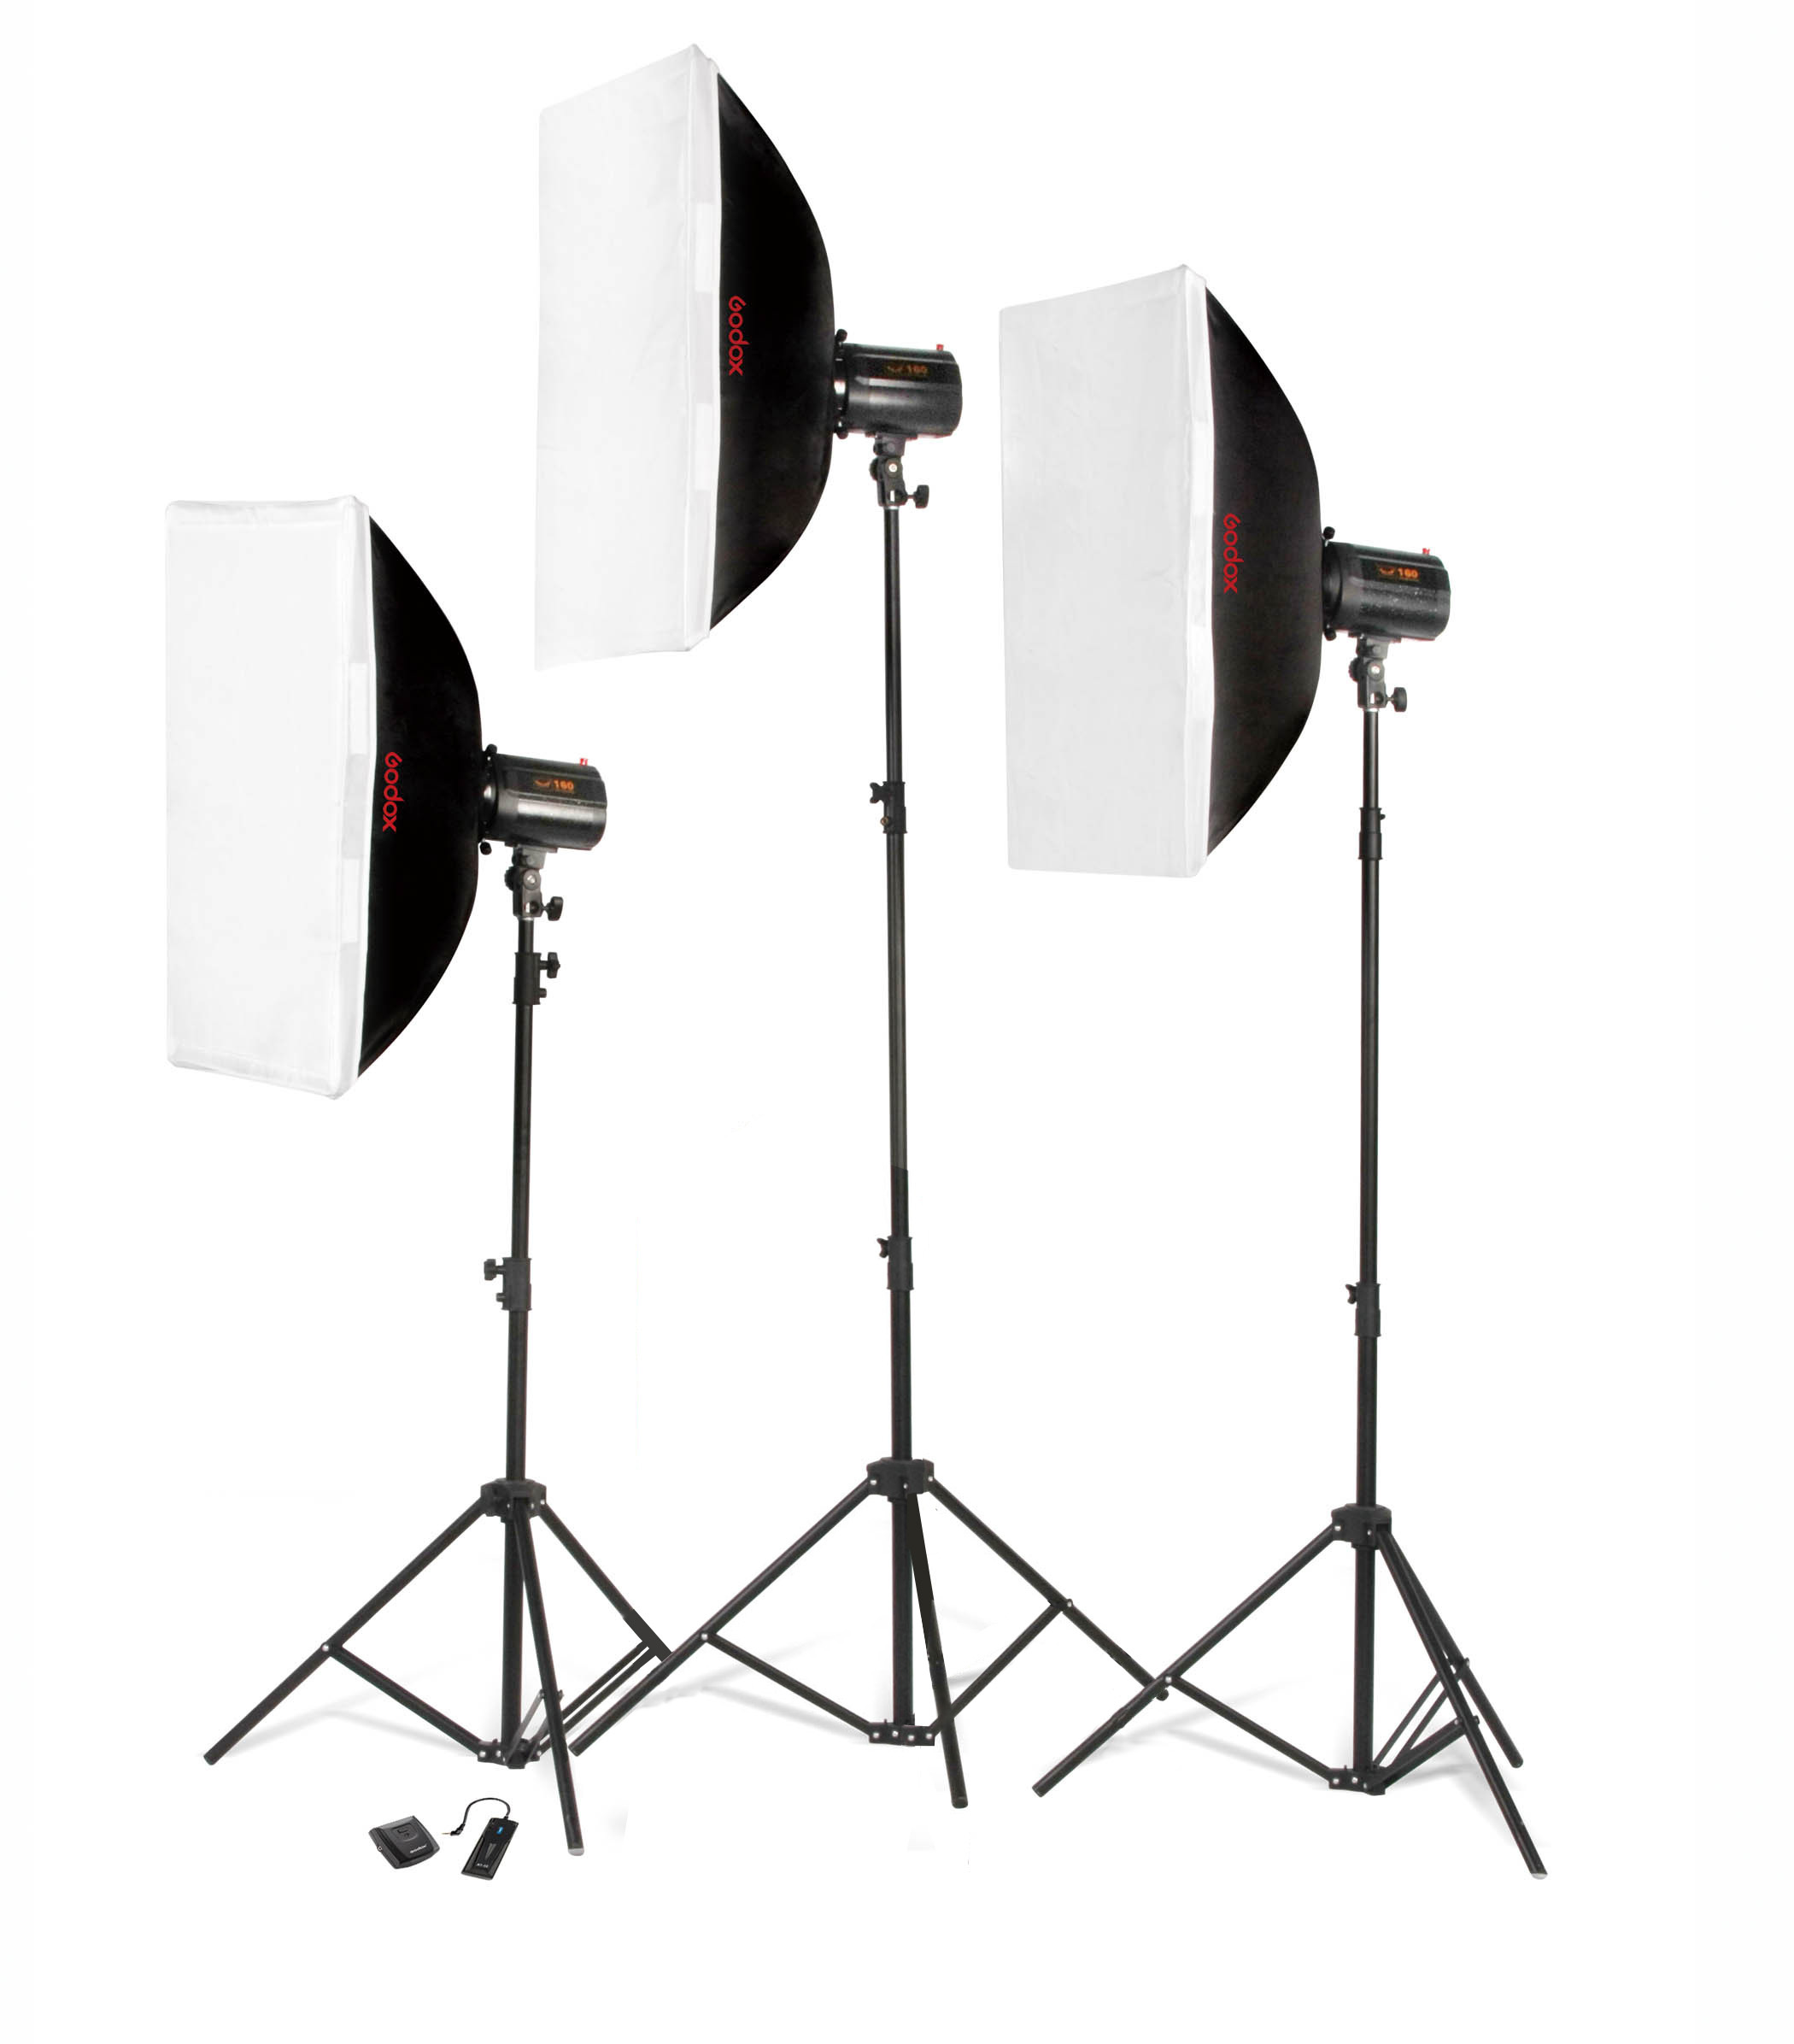 of known manufacturers announce camera strategic the rotolight s excited one with lighting are we extremely a best systems elinchrom to world collaboration photographic